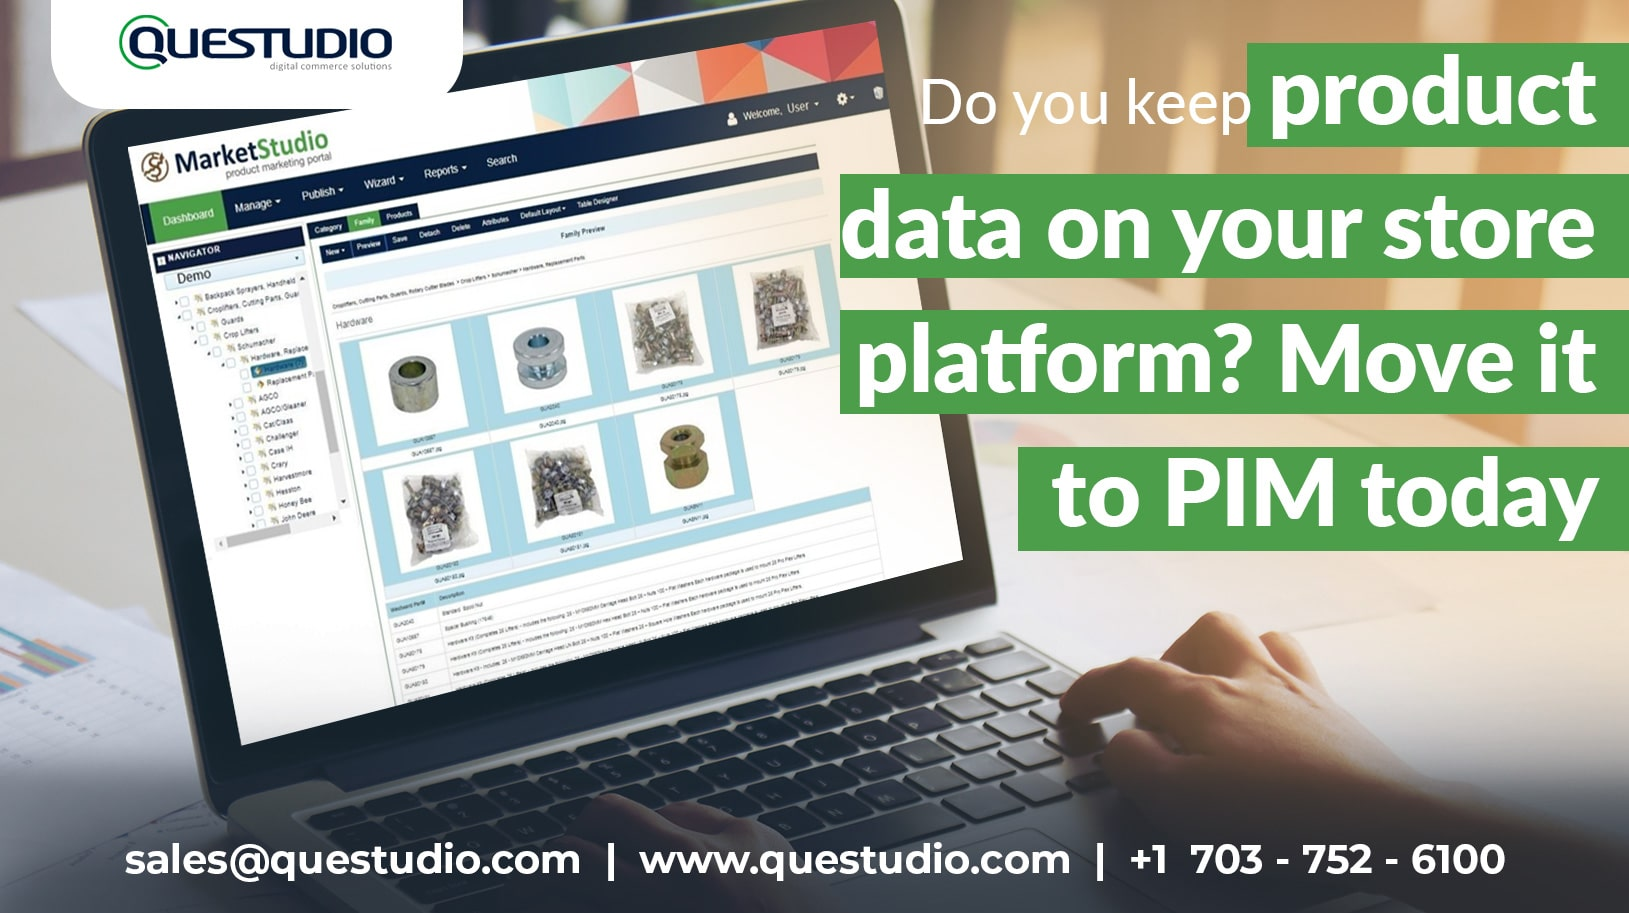 Do you keep product data on your store platform? Move it to PIM today